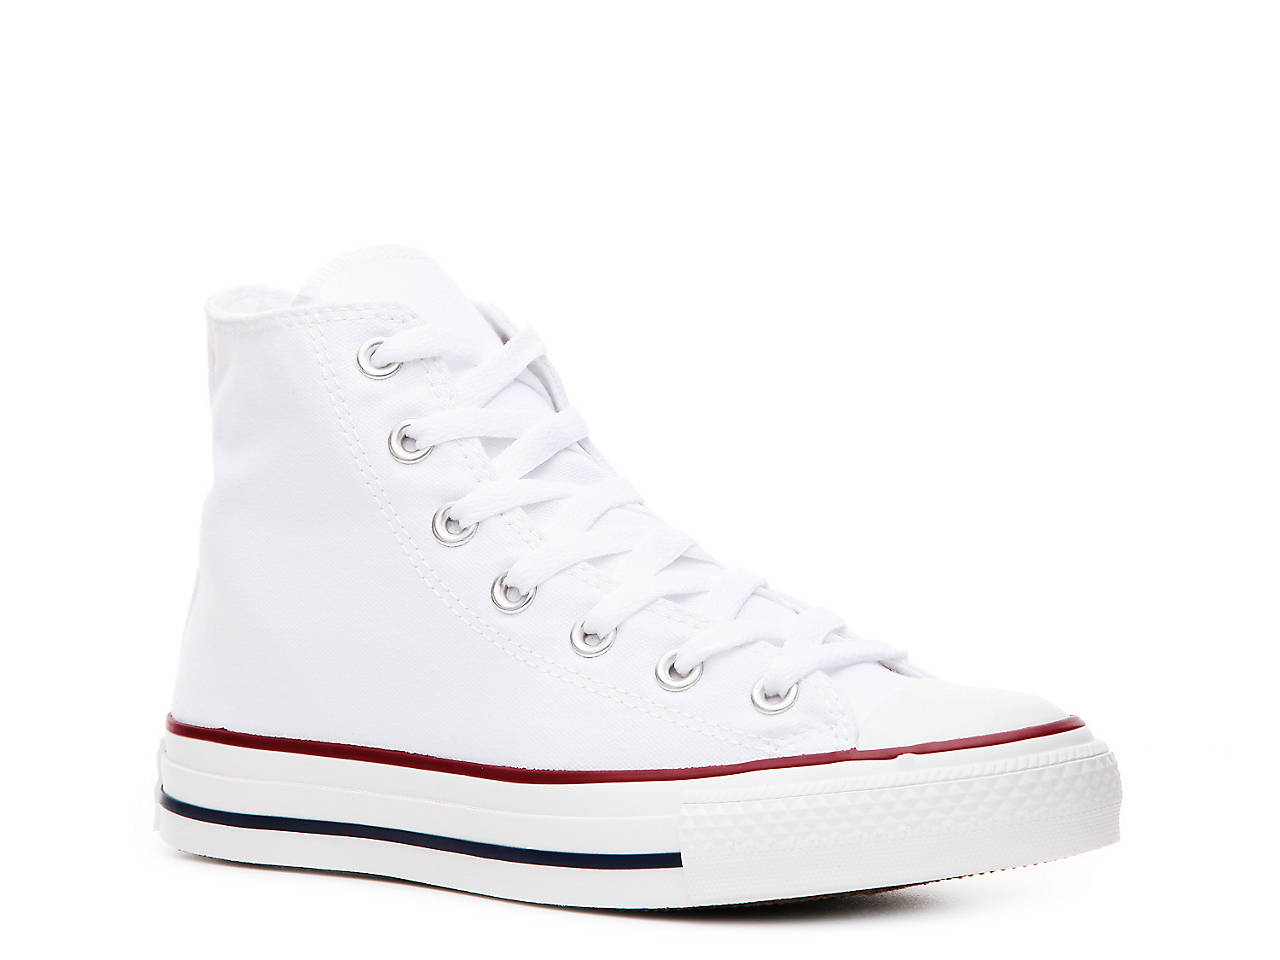 ab0b2c98f3df51 Converse Chuck Taylor All Star High-Top Sneaker - Women s Women s ...